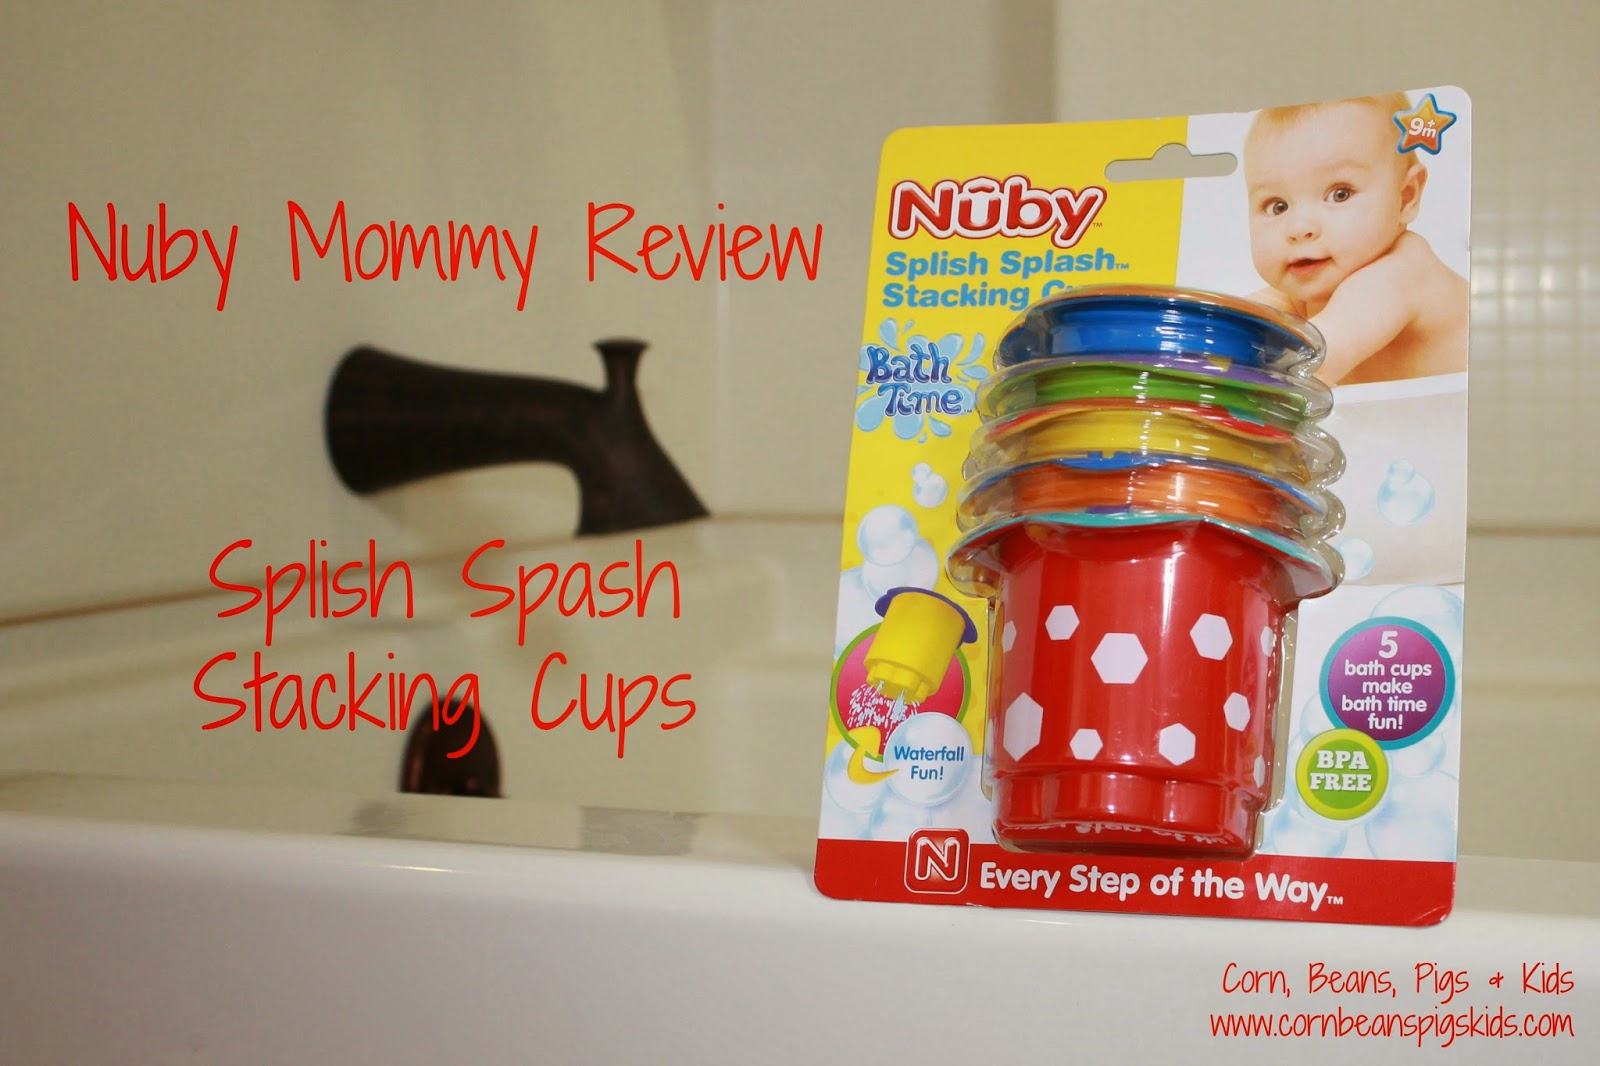 Nuby Mommy Review - Splish Splash Stacking Cups